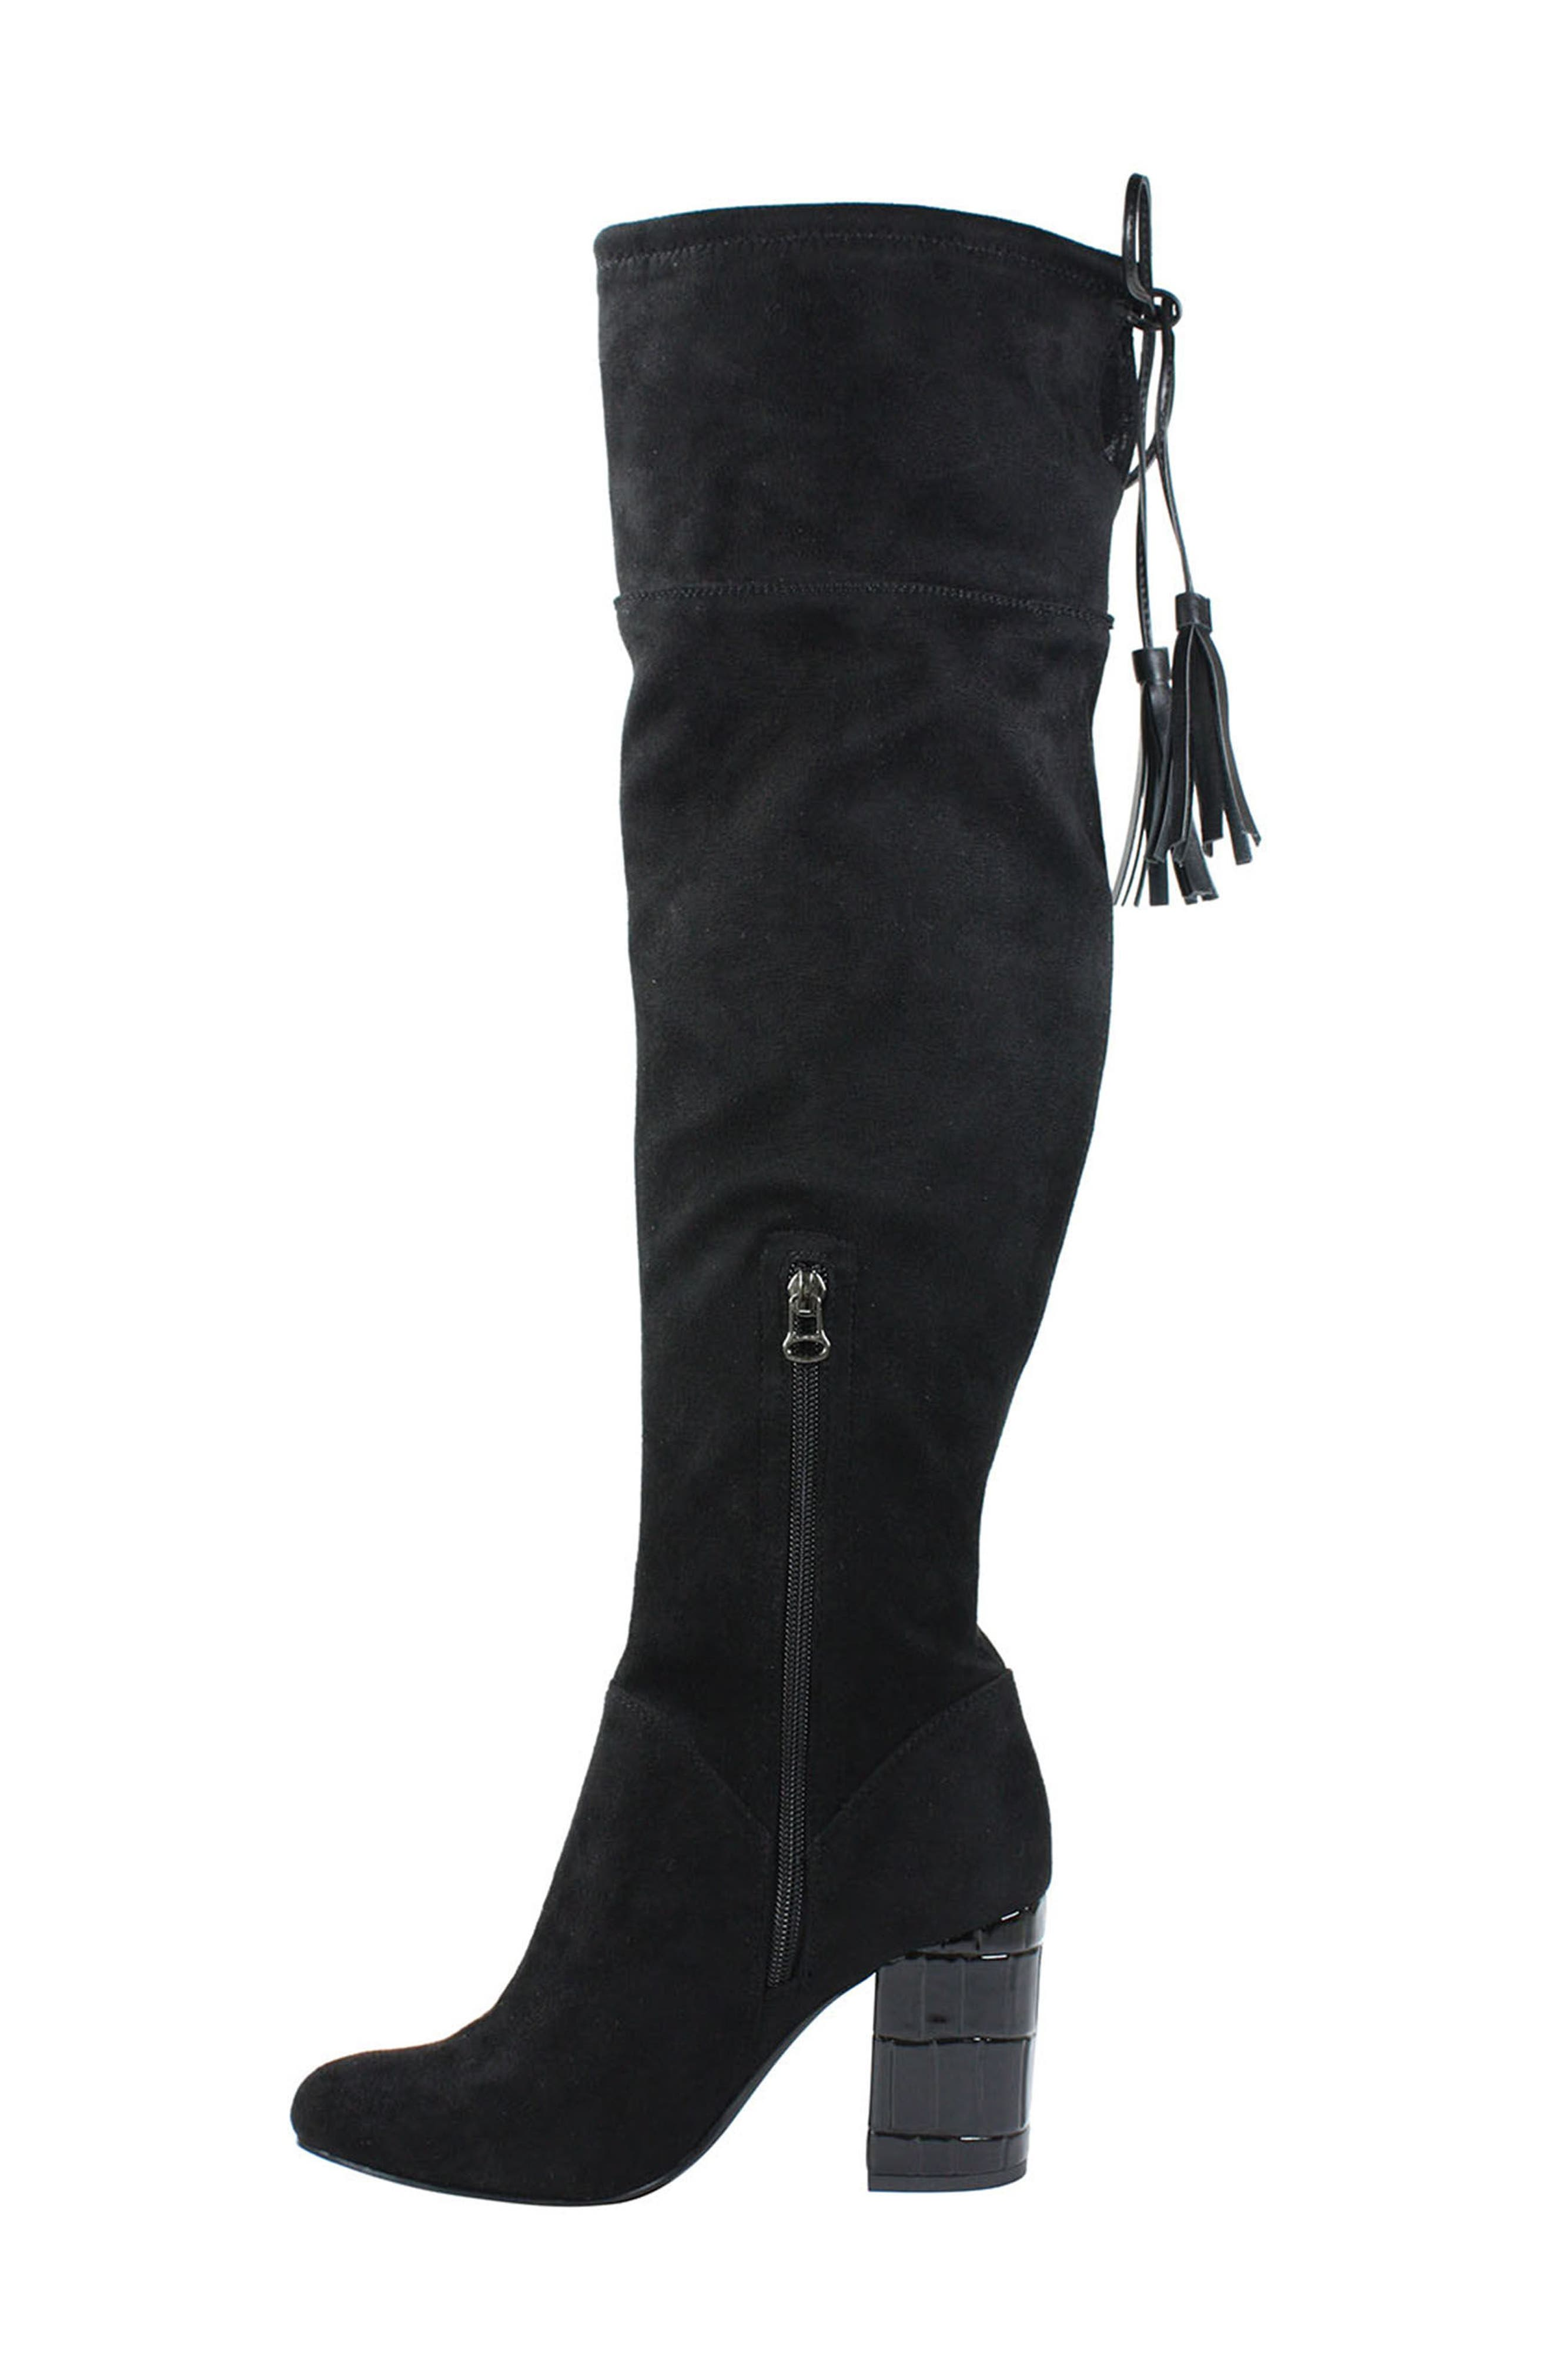 Calcari Over the Knee Boot,                             Alternate thumbnail 2, color,                             BLACK SUEDE